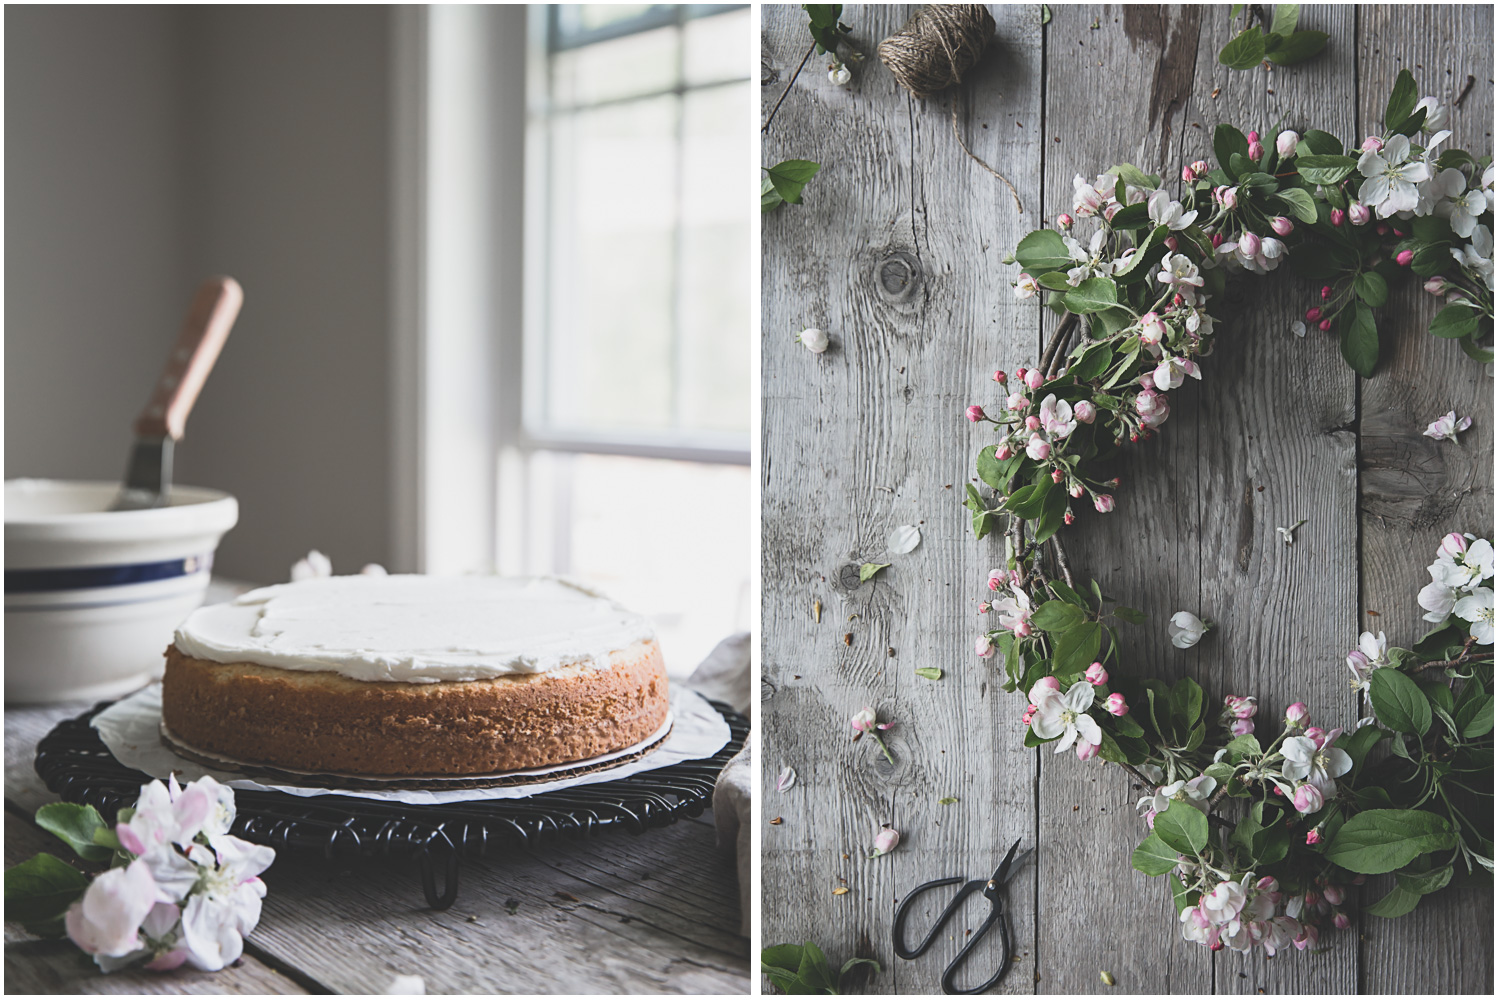 Classic white cake with buttercream and apple blossoms